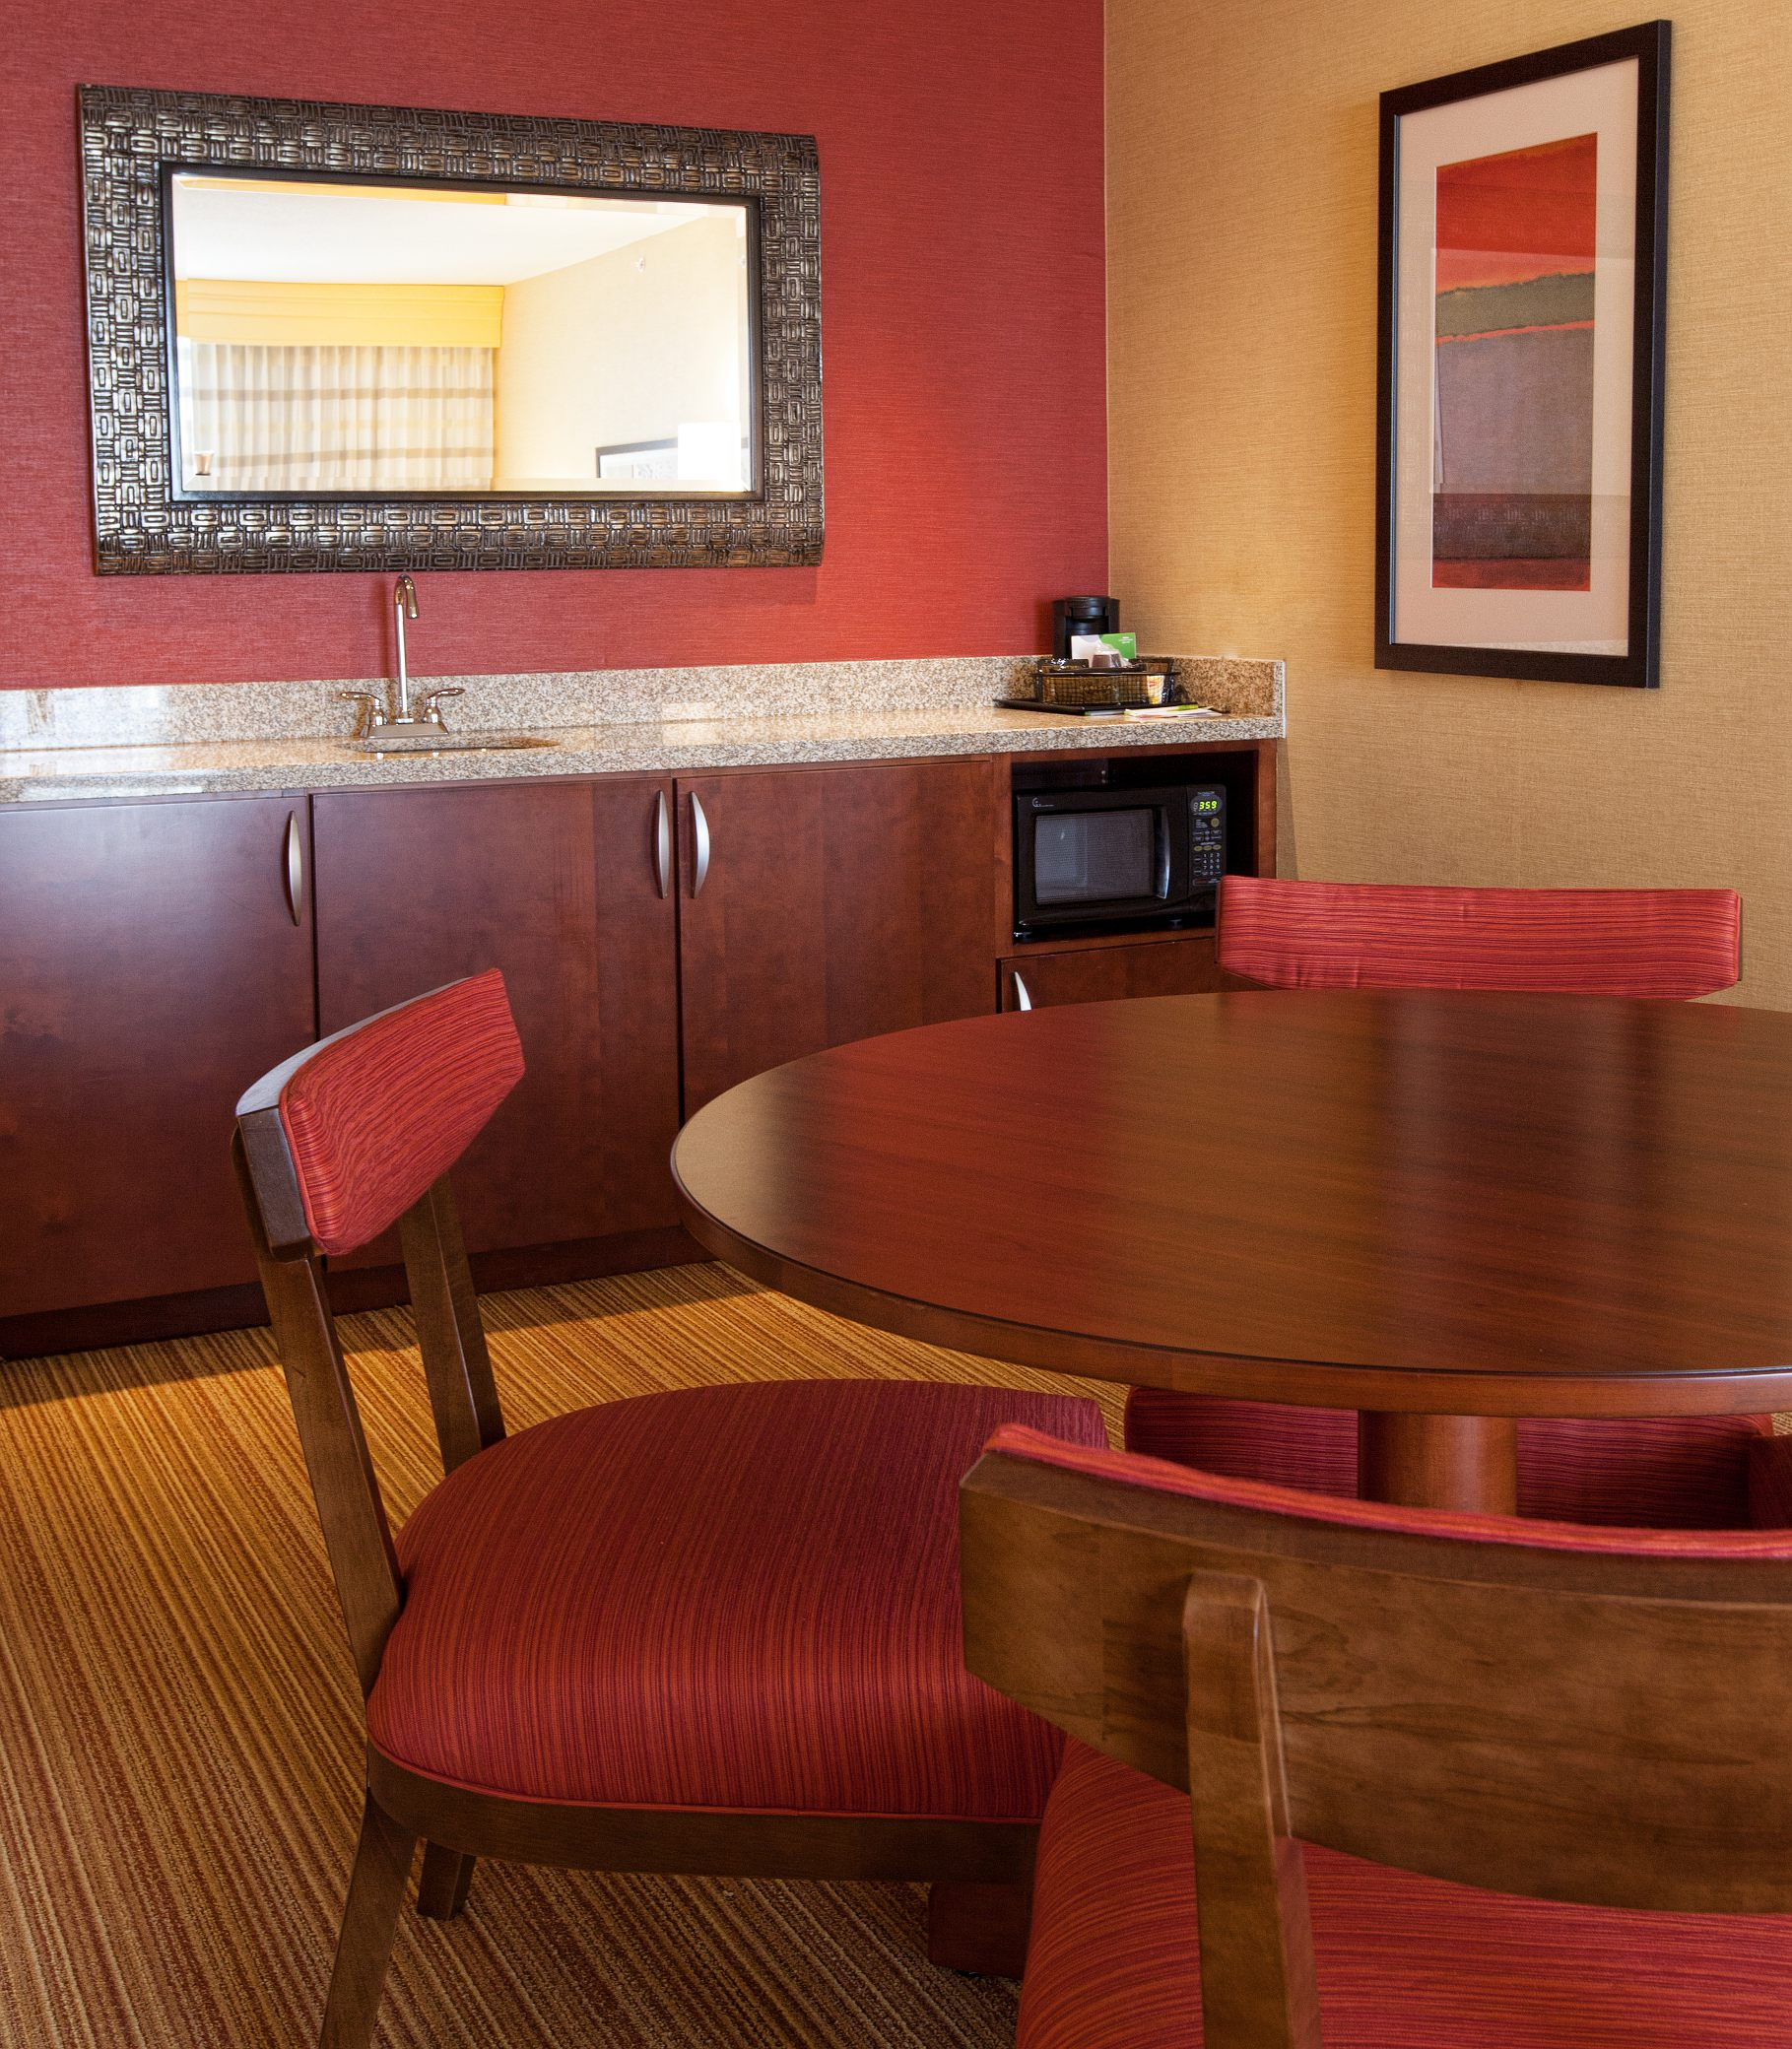 Courtyard by Marriott Kansas City at Briarcliff image 1